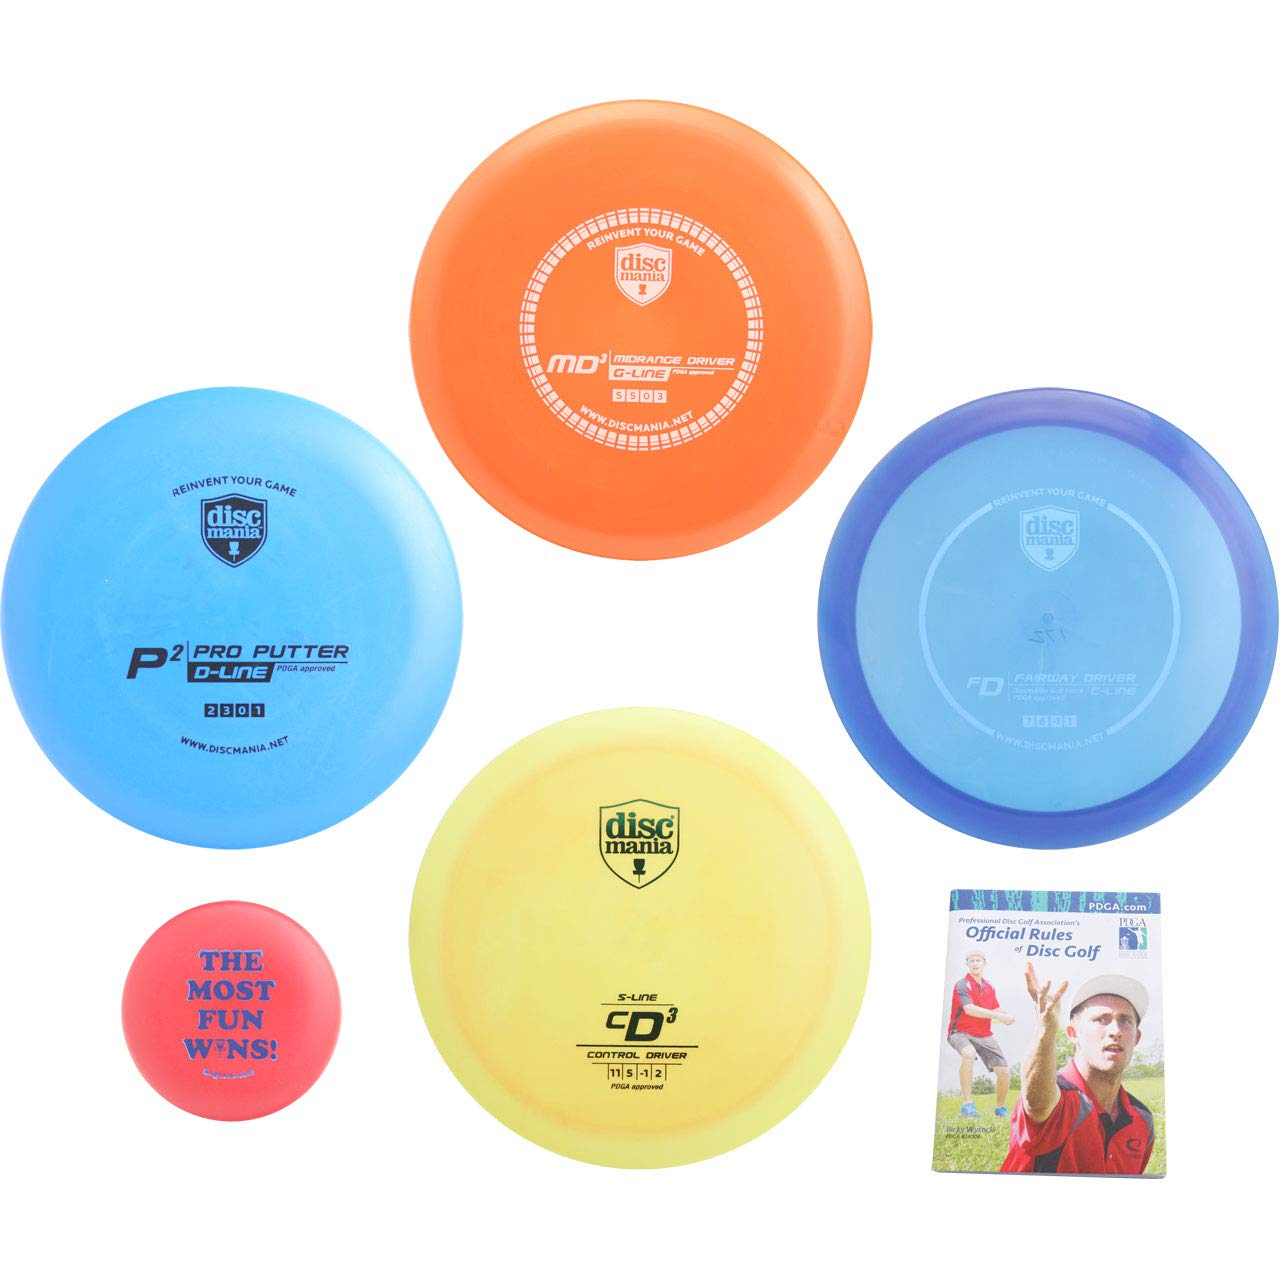 Discmania Complete Disc Golf Variety Gift Set - Distance, Fairway, Mid-Range & Putter + Mini Marker Disc, Rules (6 Items, Colors May Vary) (4 Discs (Distance, Fairway, mid-Range, Putter, Extras))